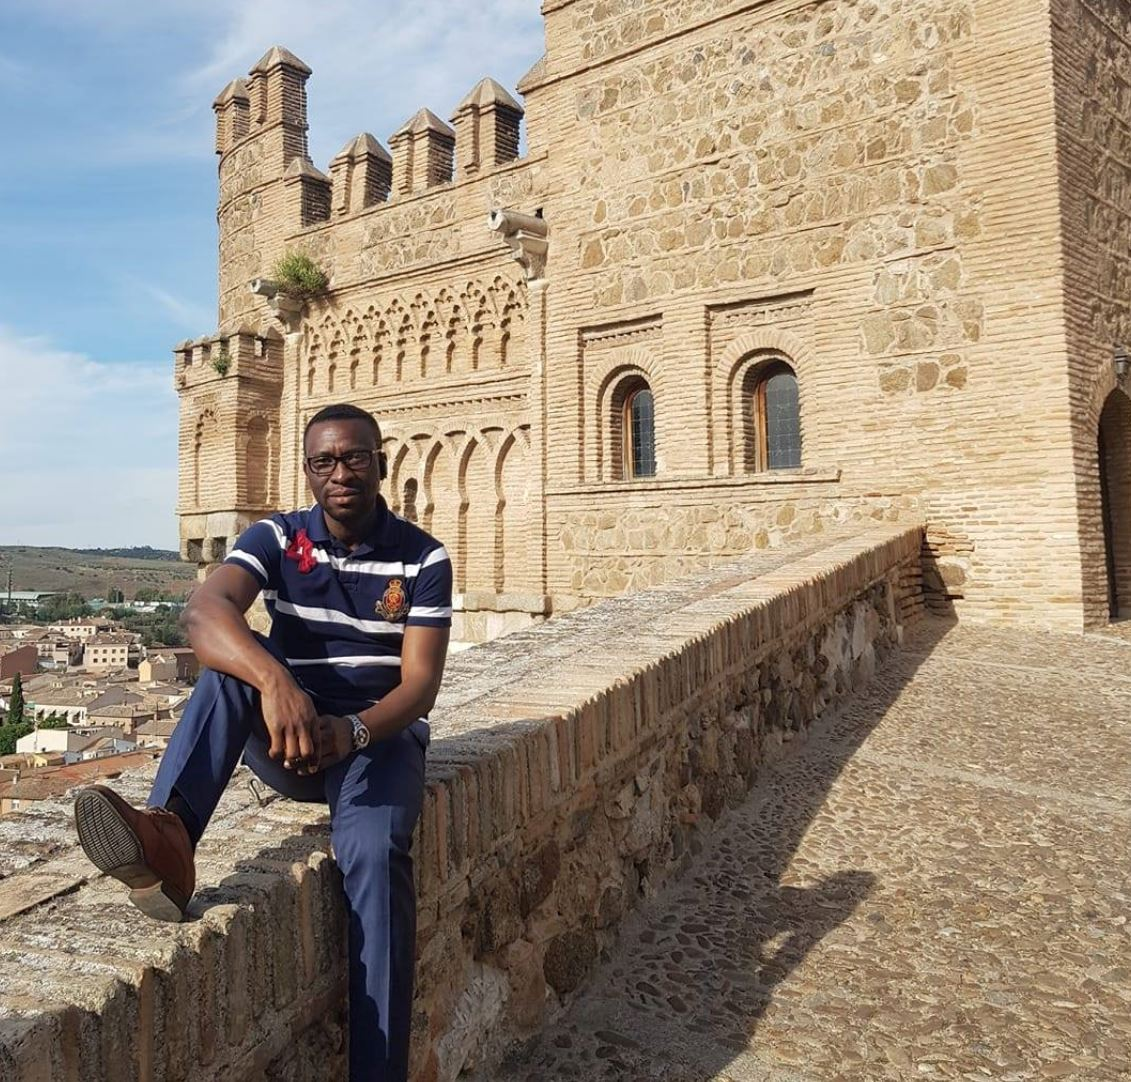 KAICIID Fellow Johnson Amamnsunu sits on a wall in Spain